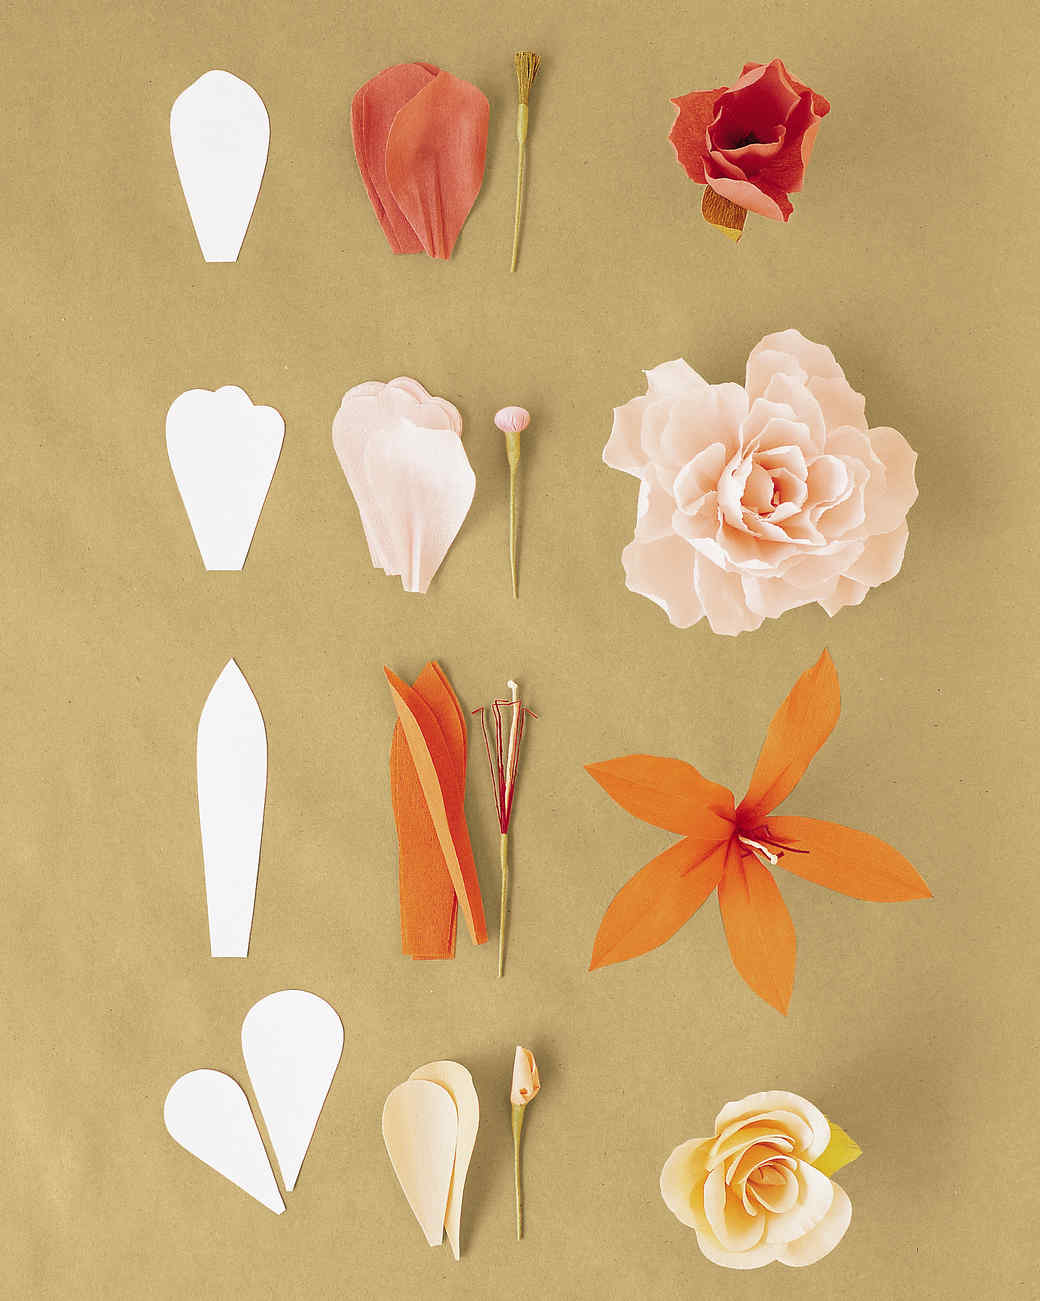 tissue paper flower templates - Yeni.mescale.co